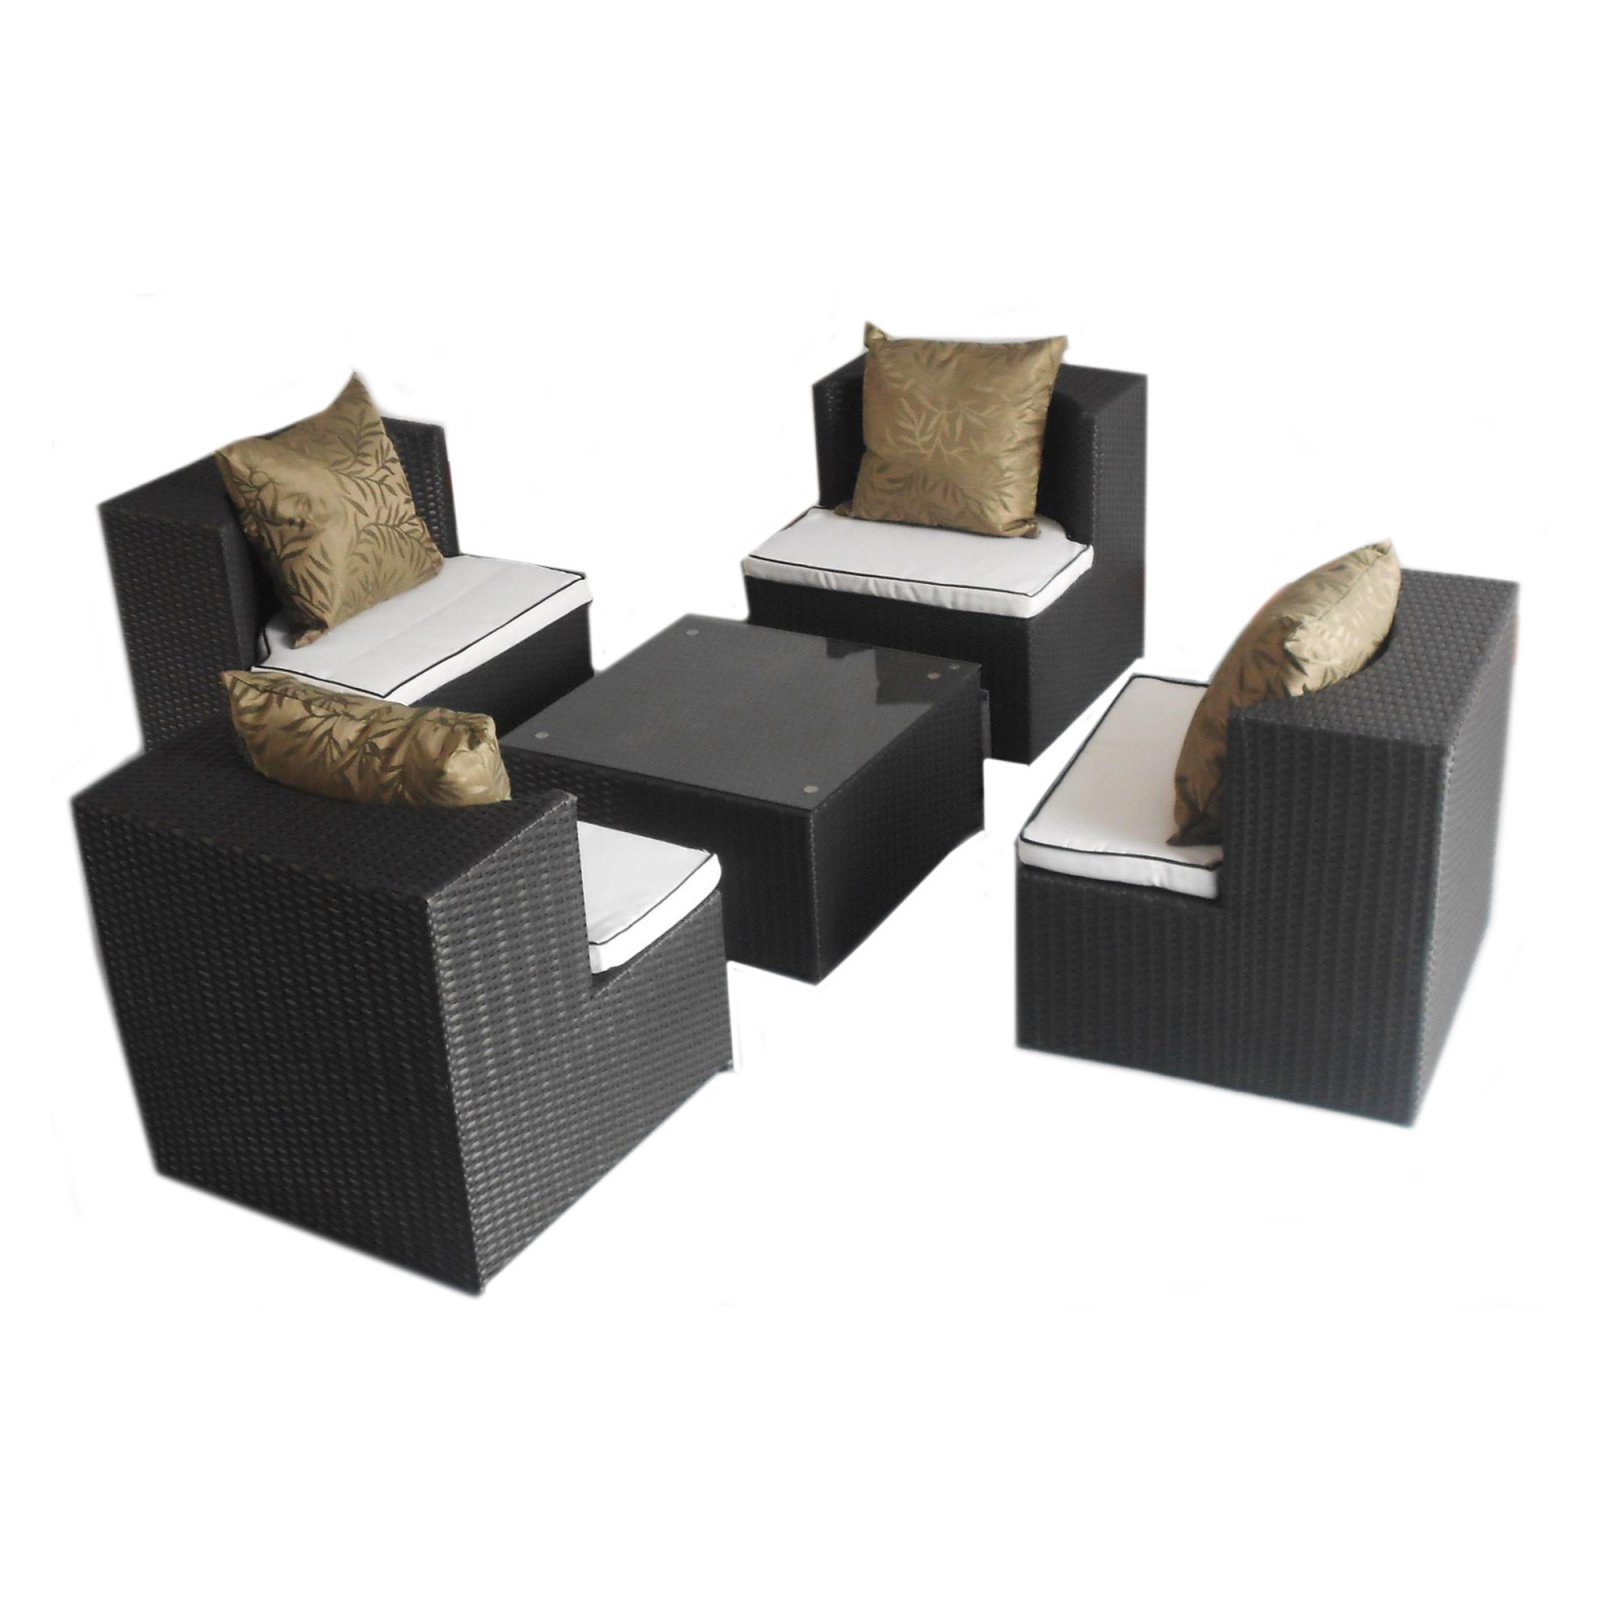 Art-Deck-Oh! Geo-Cube All Weather Wicker Chat Set